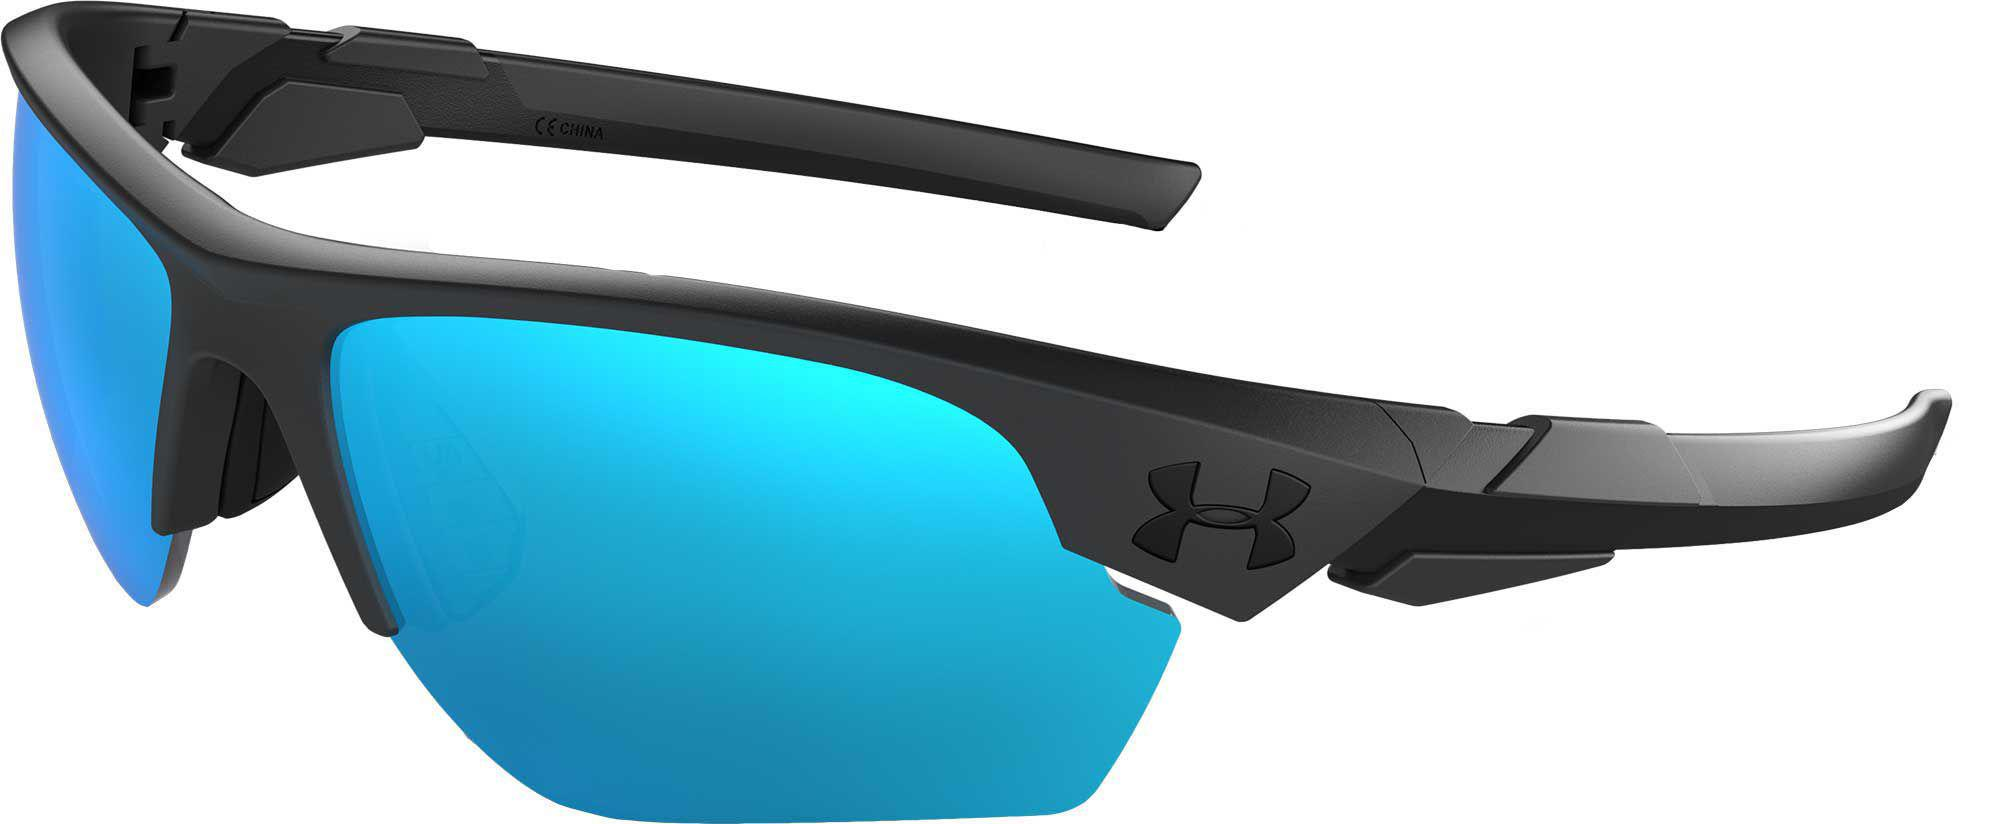 057a4bcc1d22 Polarized Or Non Polarized Sunglasses For Baseball - Shabooms